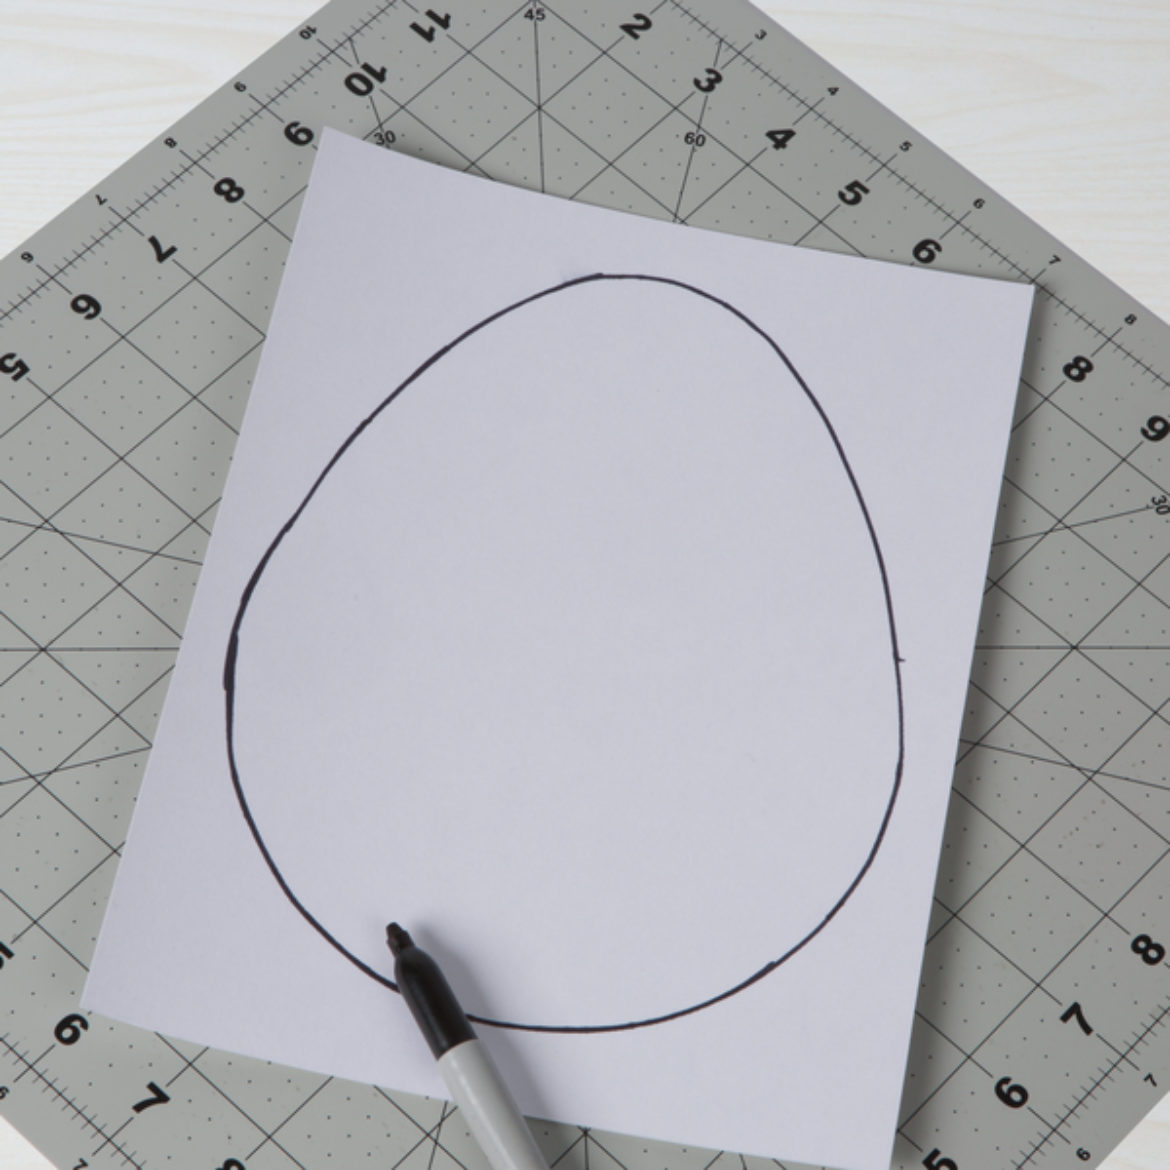 Egg shape drawn onto a piece of poster board